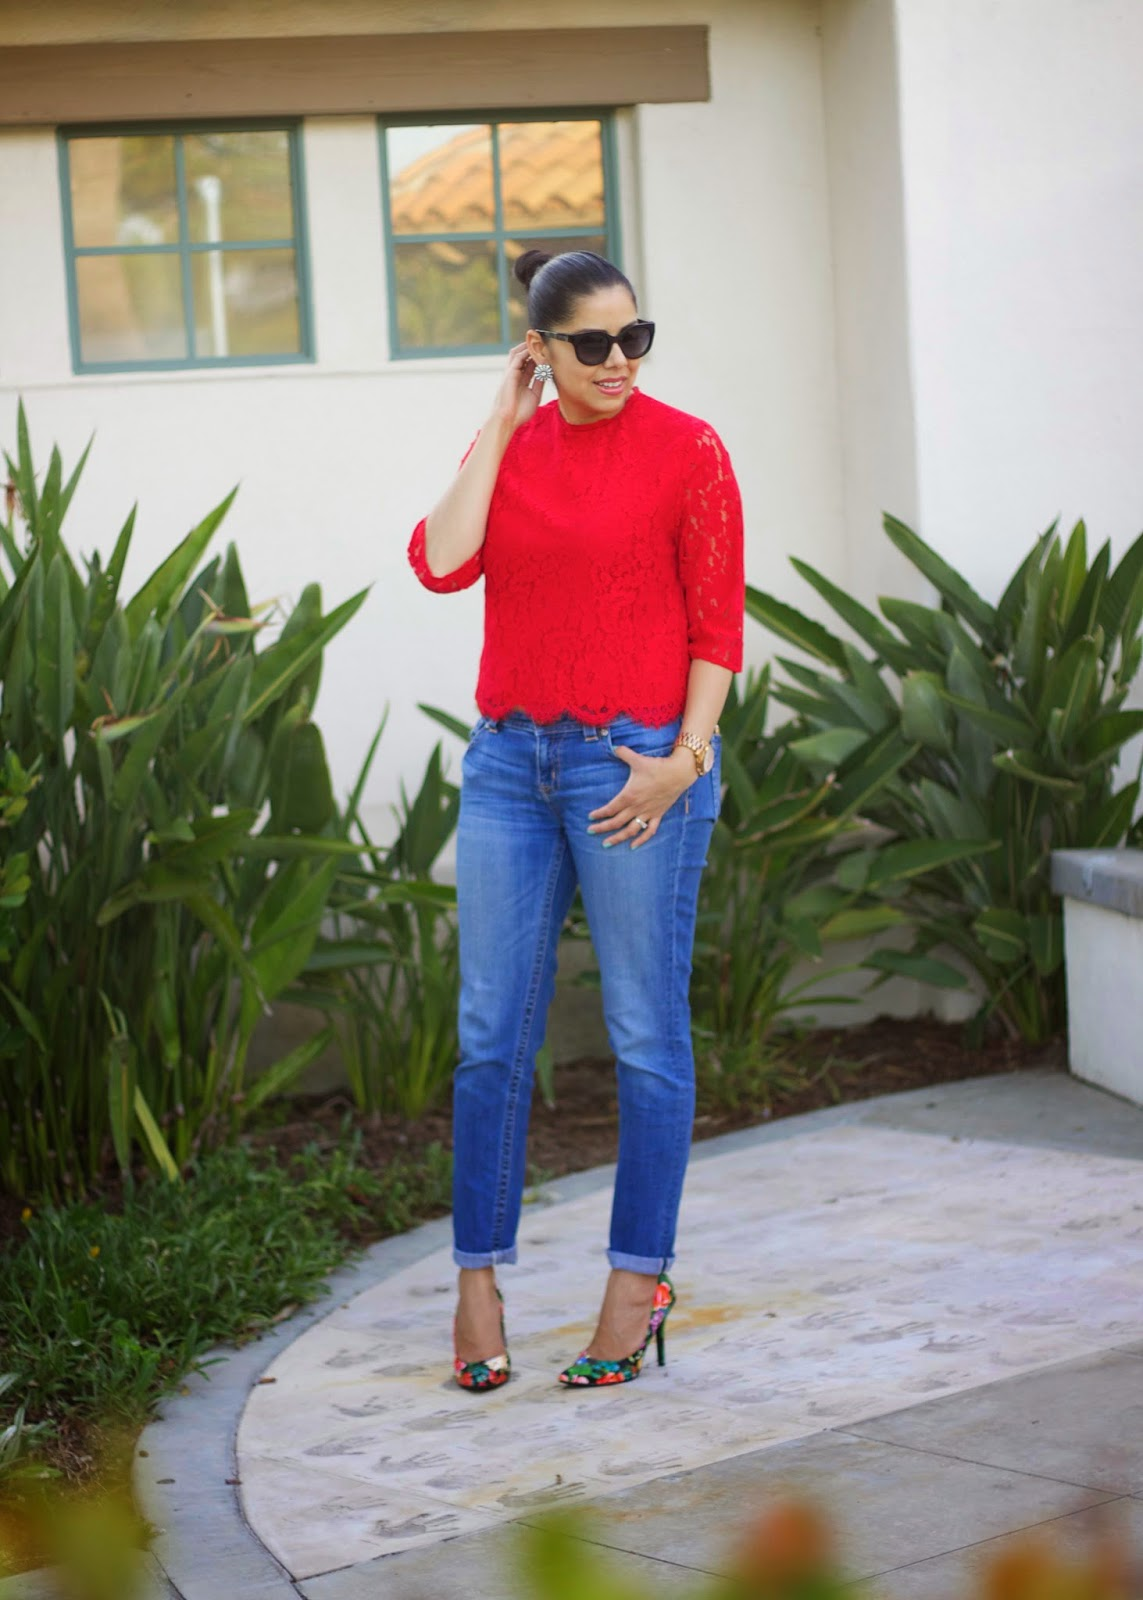 Red H&M Lace Top, Casual Cocktail attire, Jeans and floral heels, San Diego Fashion, Charlotte Russe Floral Heels